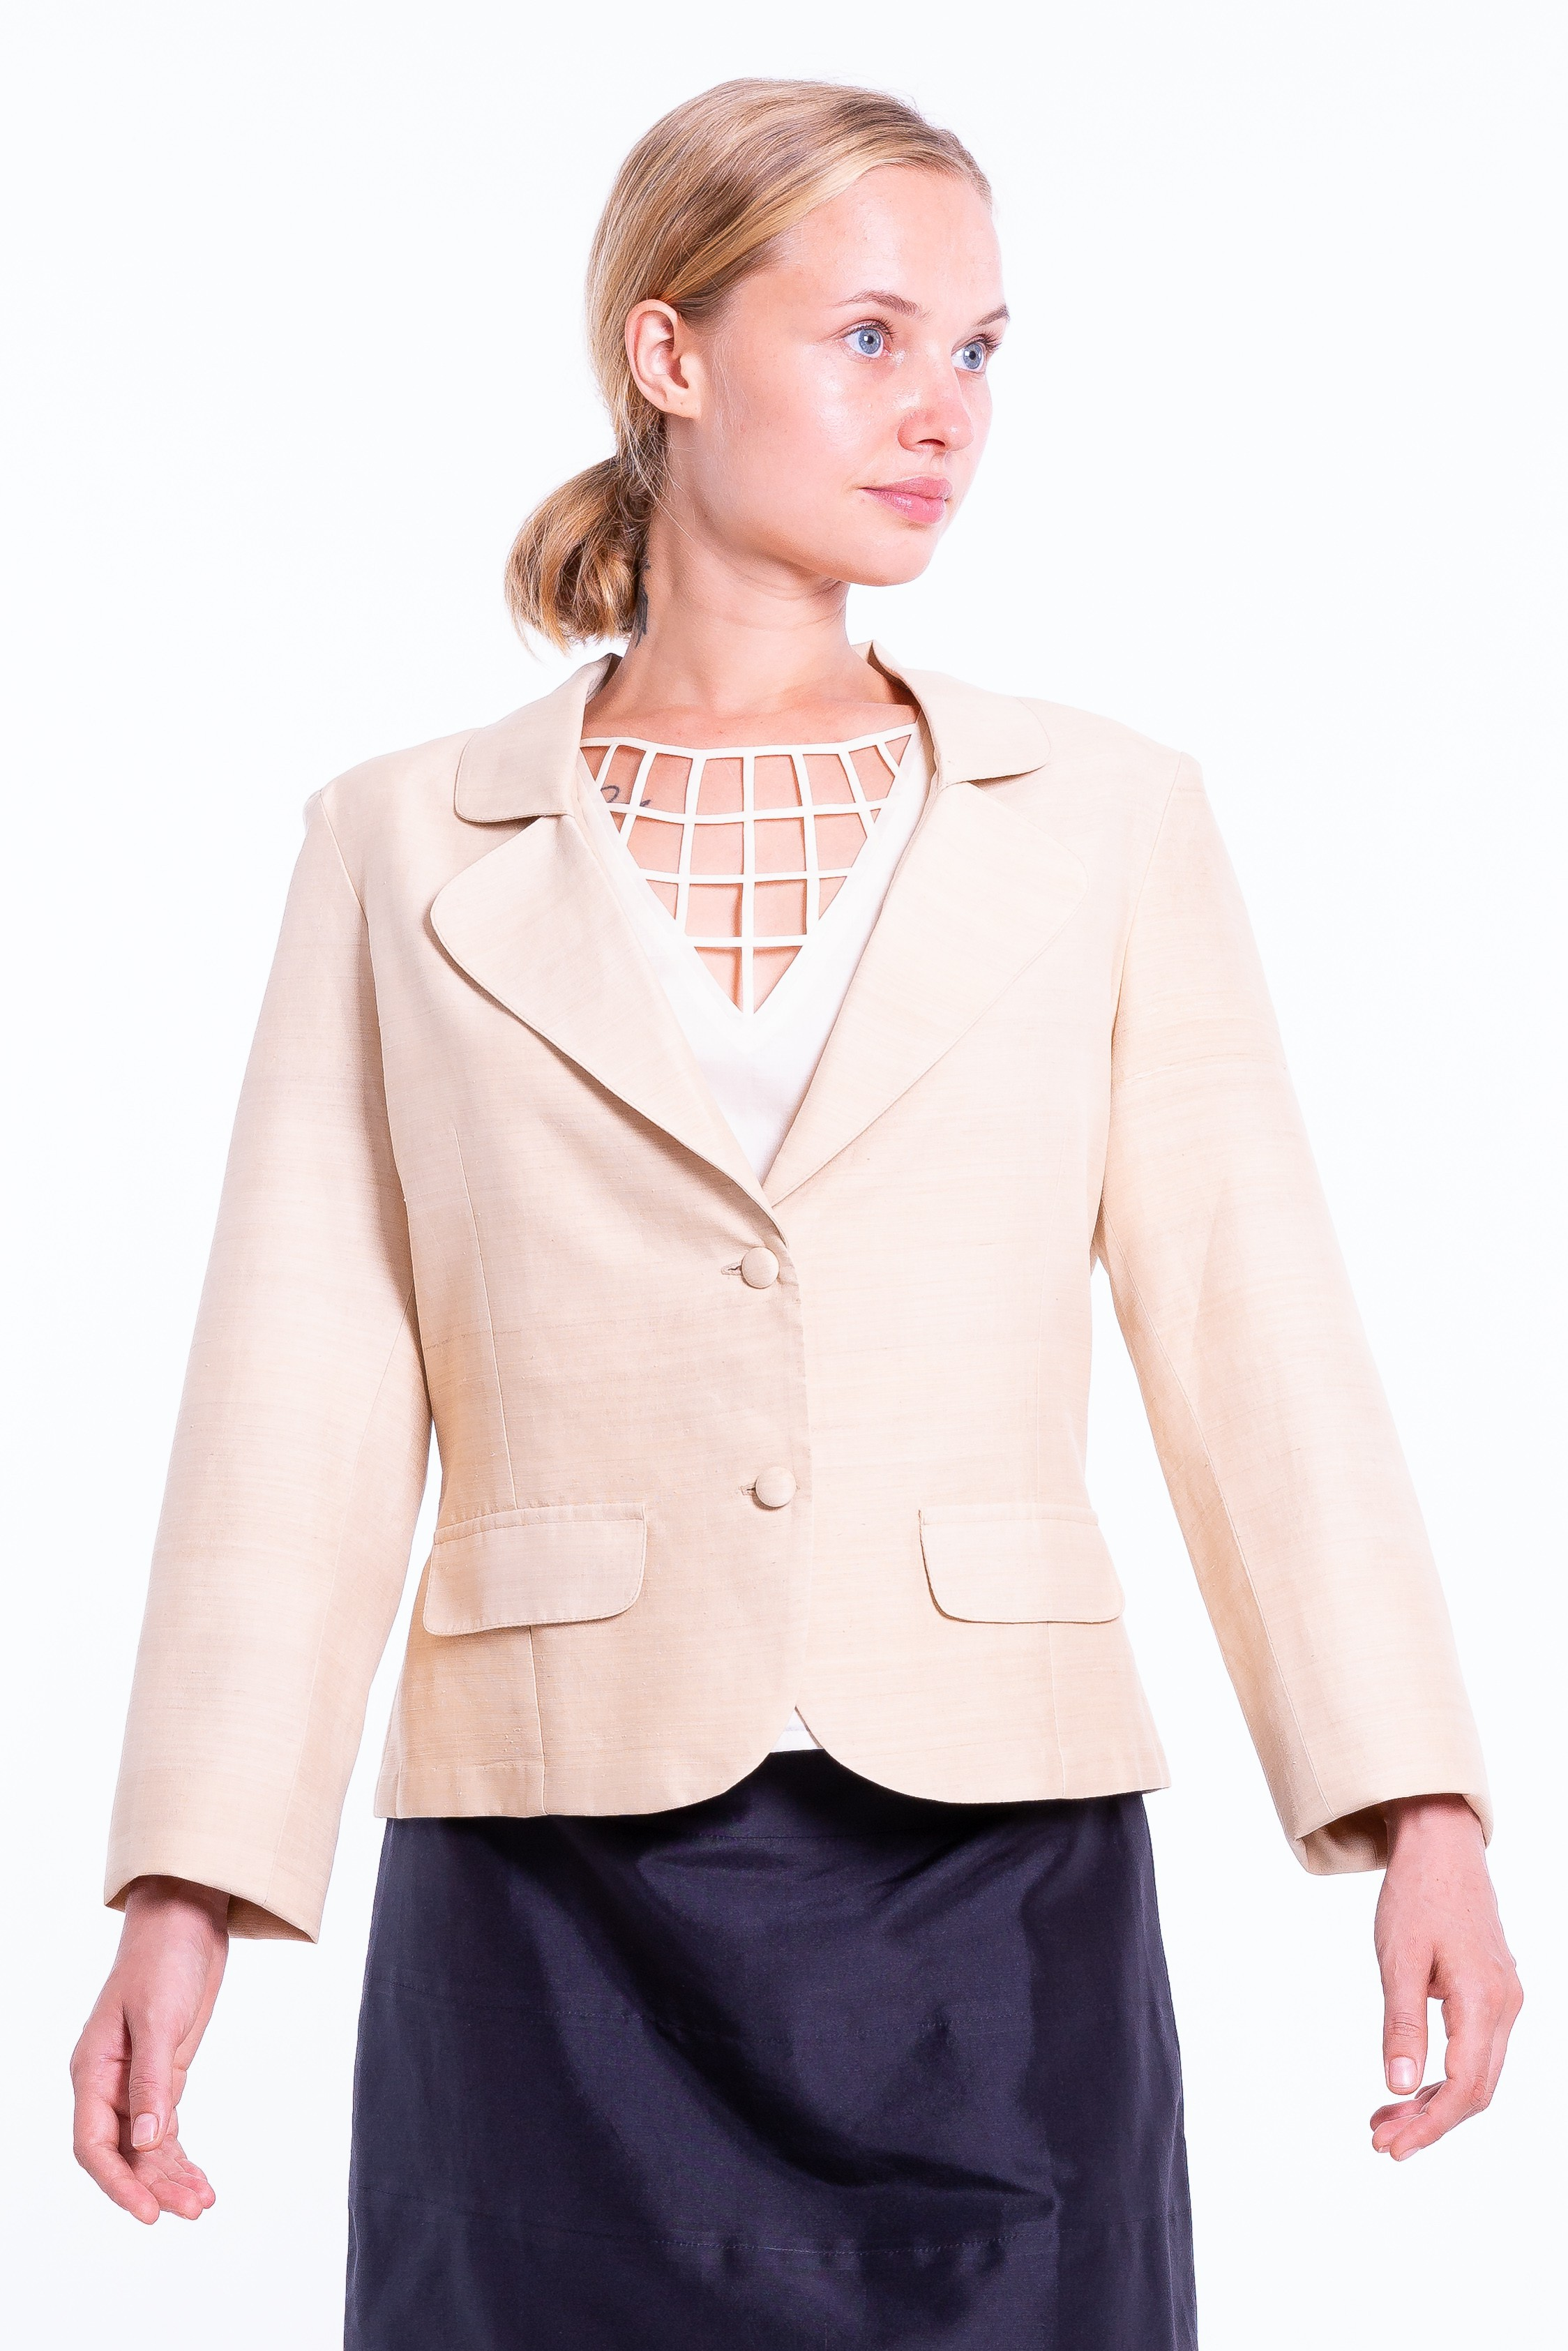 beige blazer in lotus fiber and natural silk, notched-collar and covered buttons, decorative flap pockets, wrinkle-free